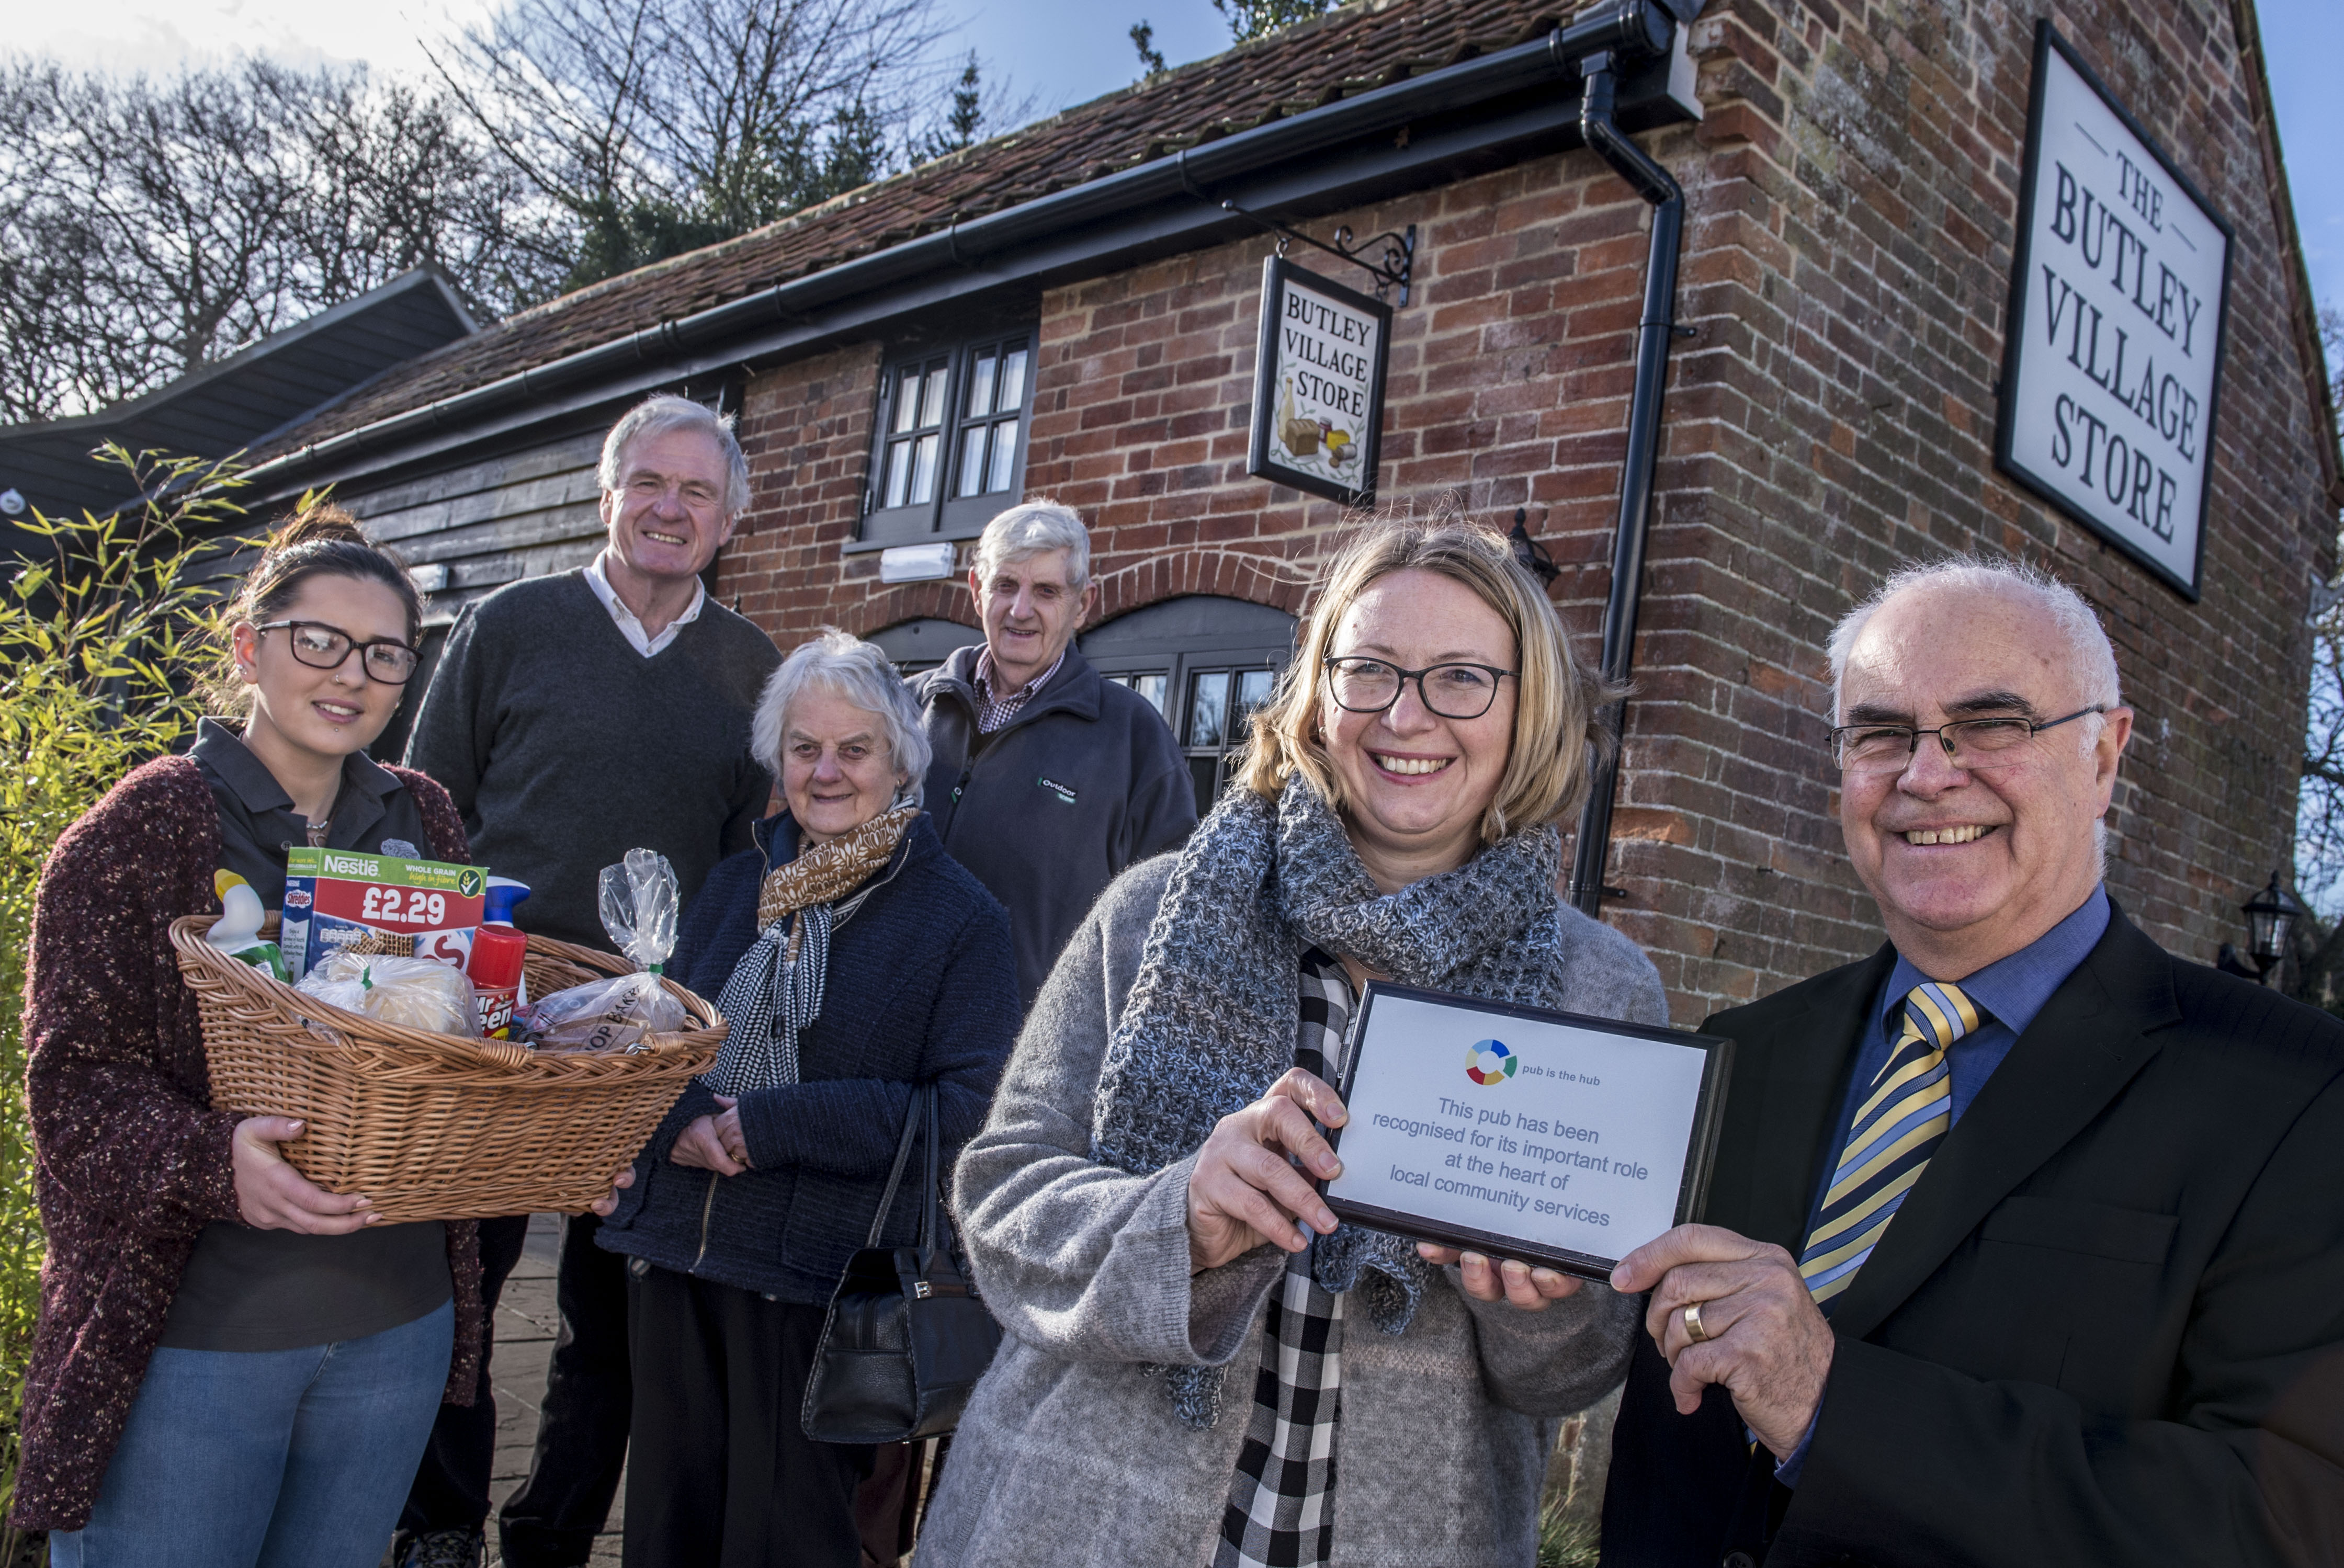 The grand opening of the Village Shop. Photo credit: Pub is the Hub